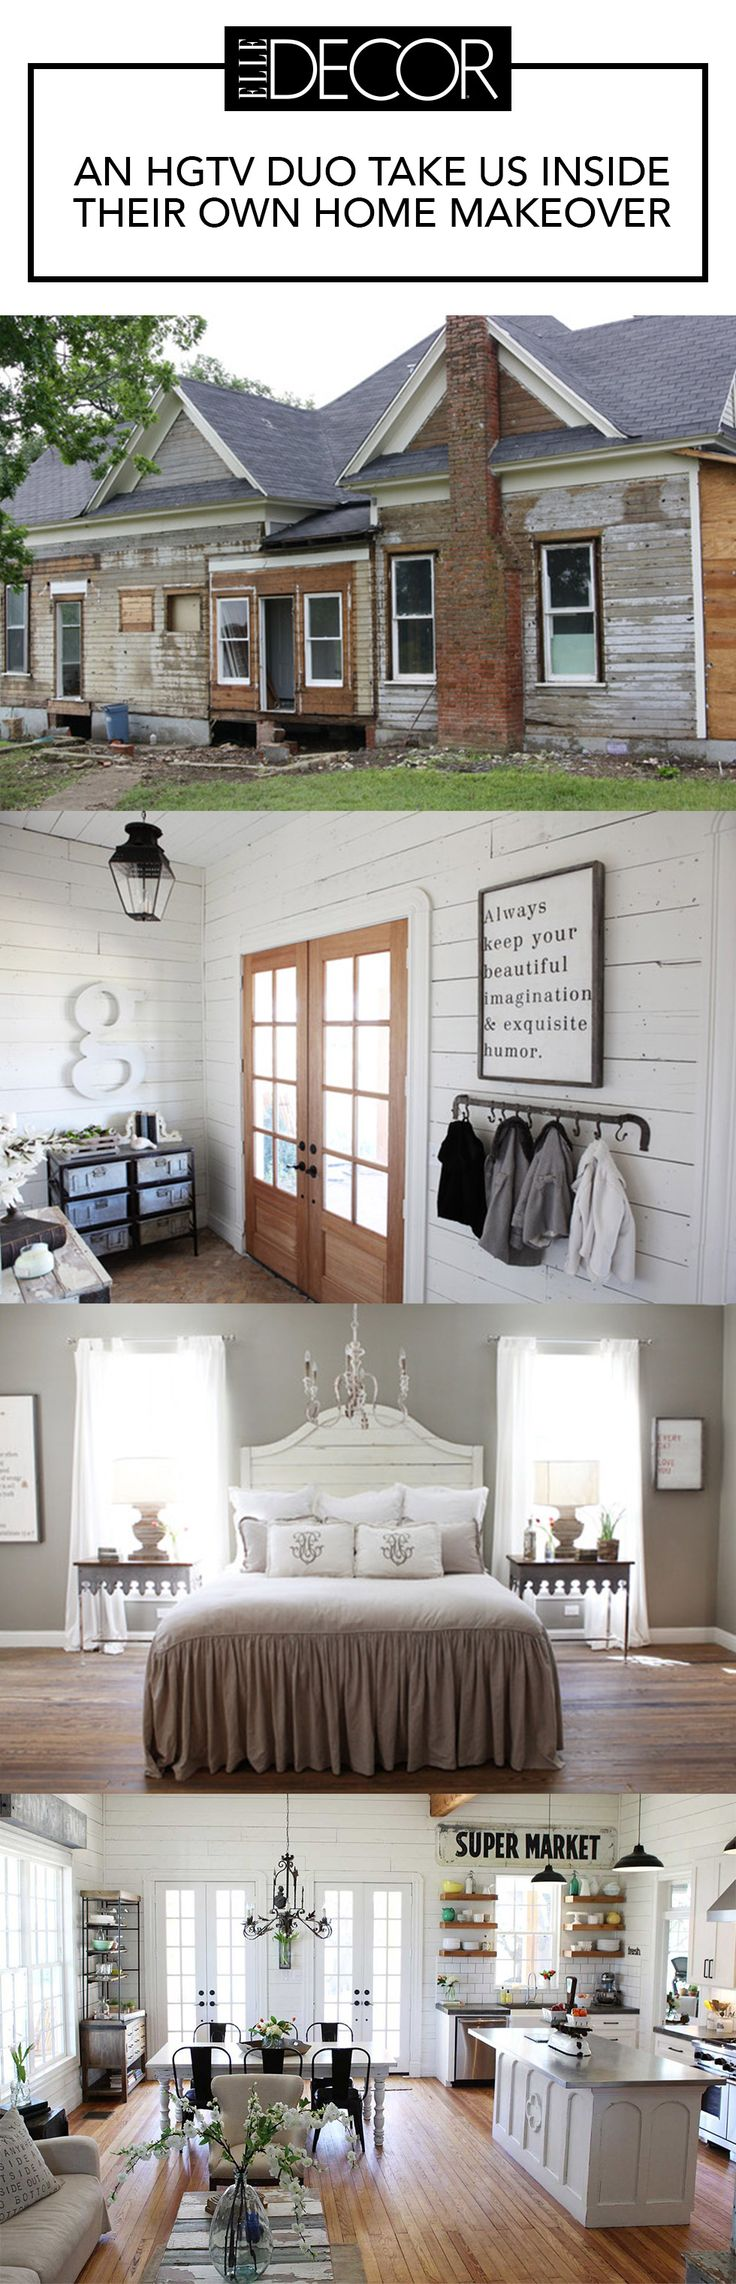 304 best images about fixer upper style on pinterest for How much do chip and joanna make on fixer upper